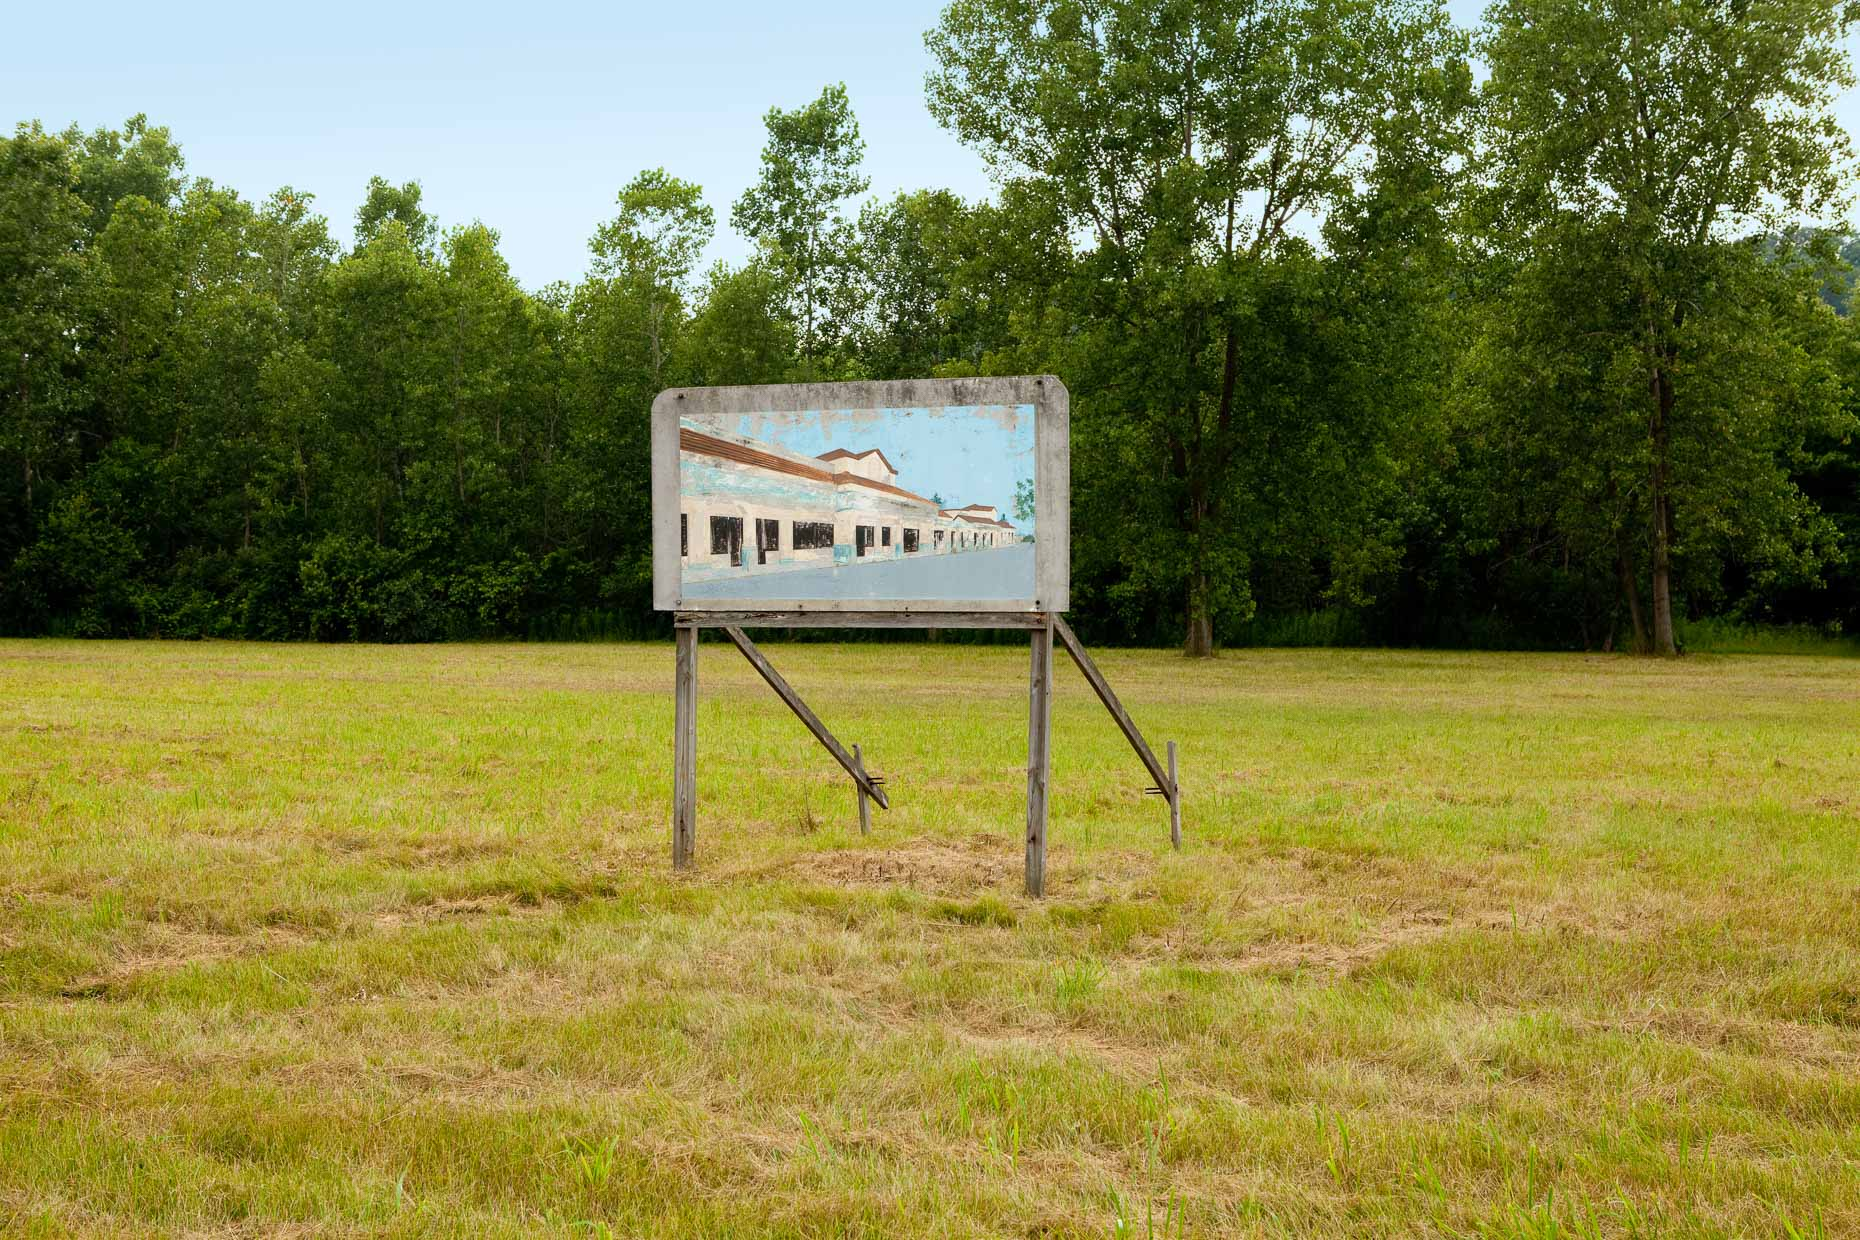 Billboard showing proposed development building on vacant lot.